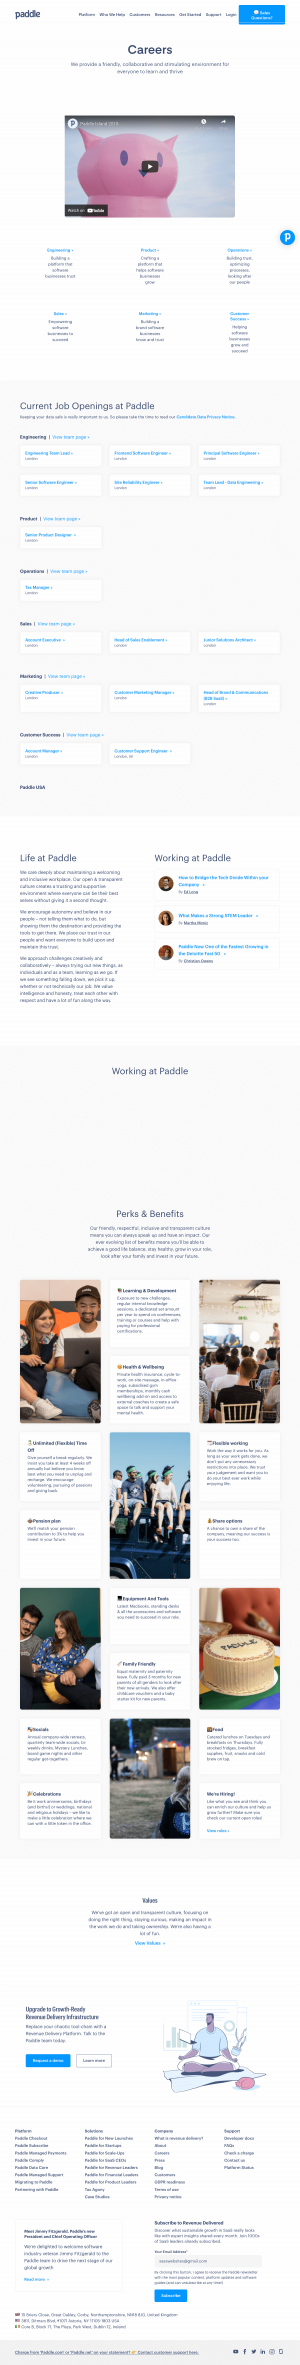 Paddle – Careers page